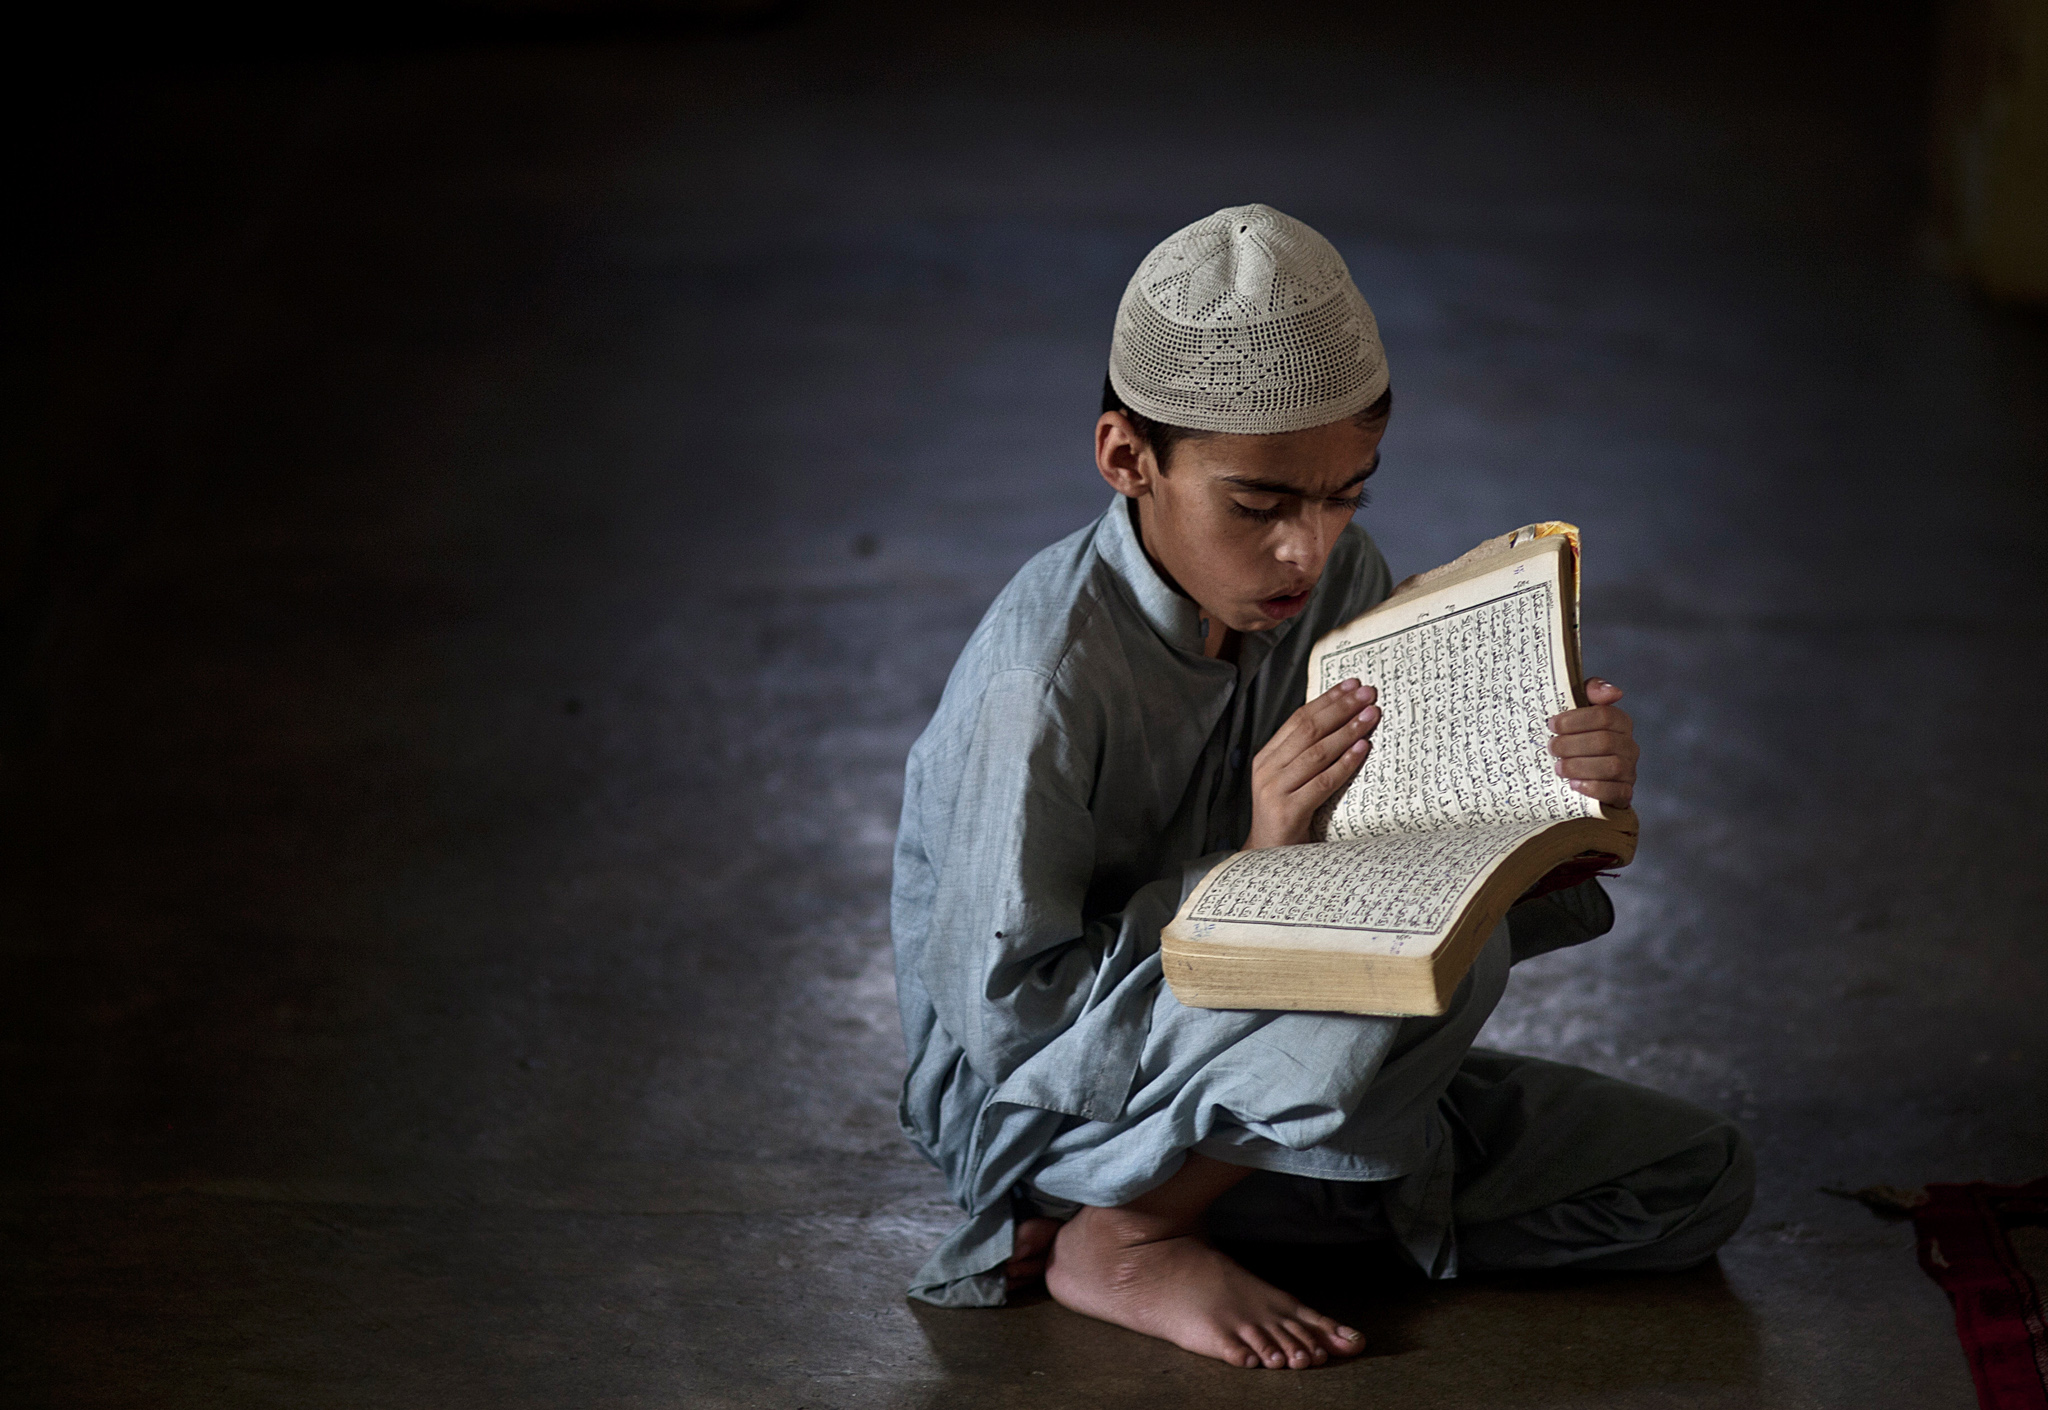 A Pakistani student reciting the Qur'an